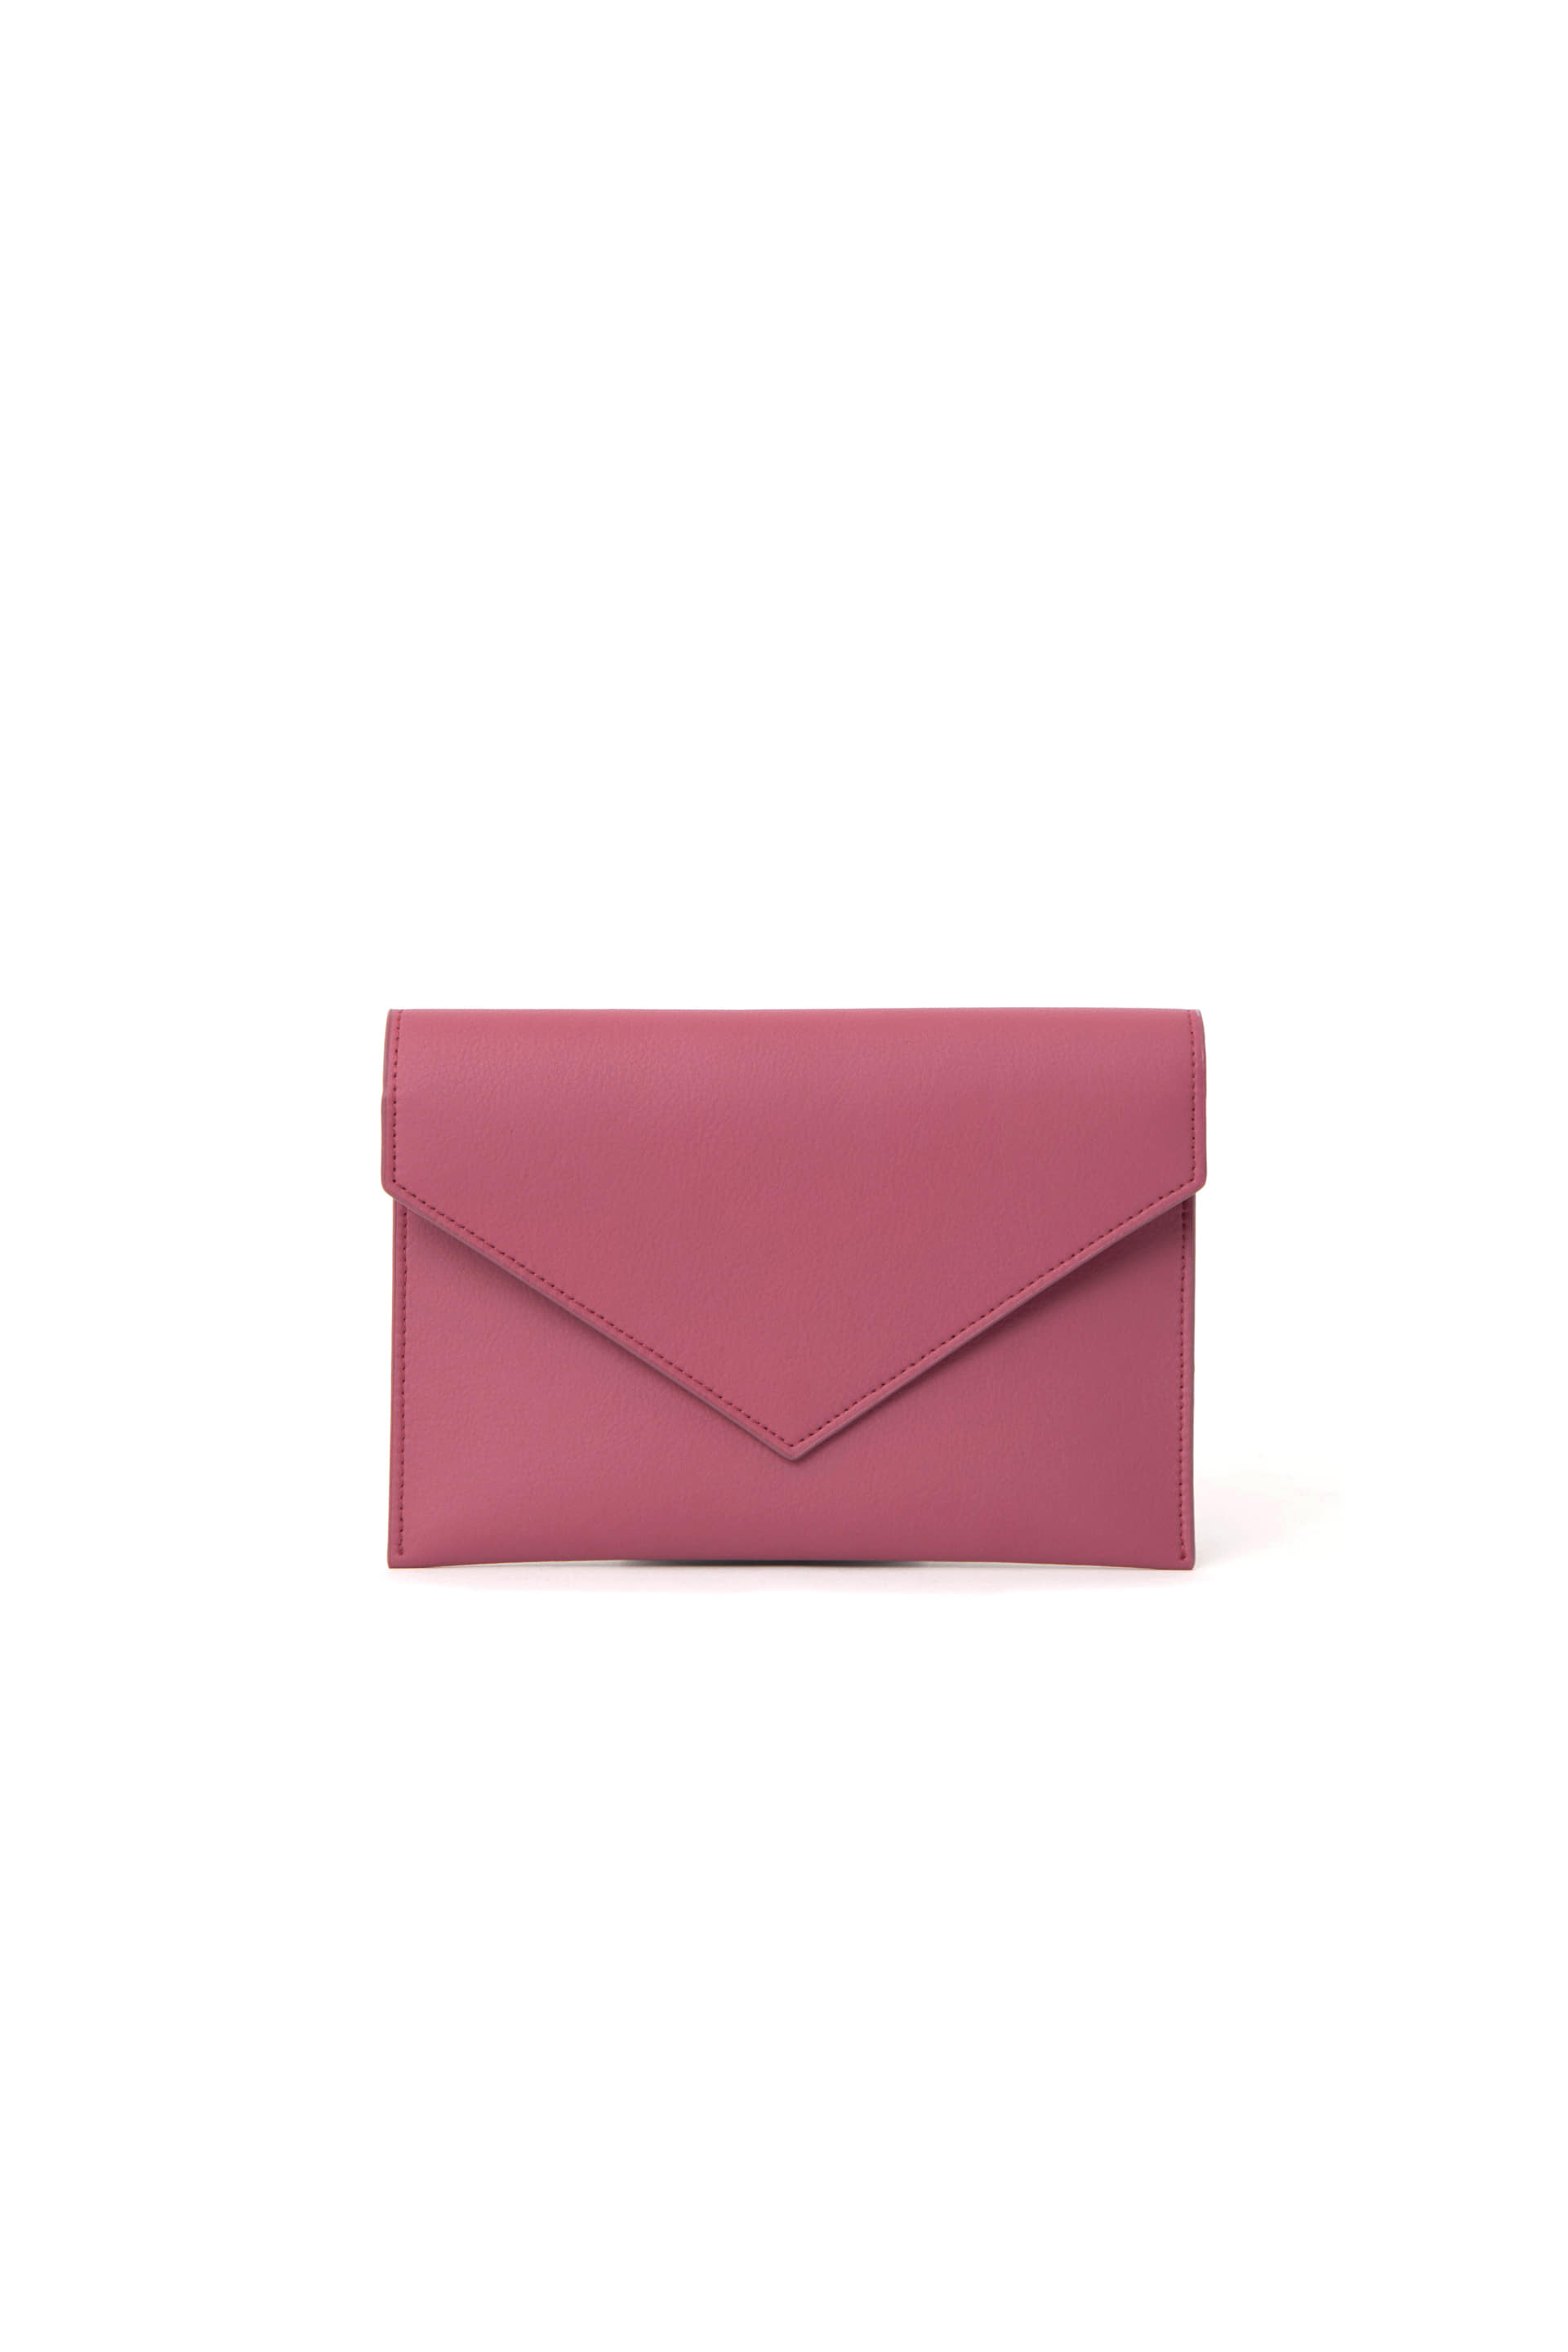 COSMETIC CLUTCH 05 Cherry Pink